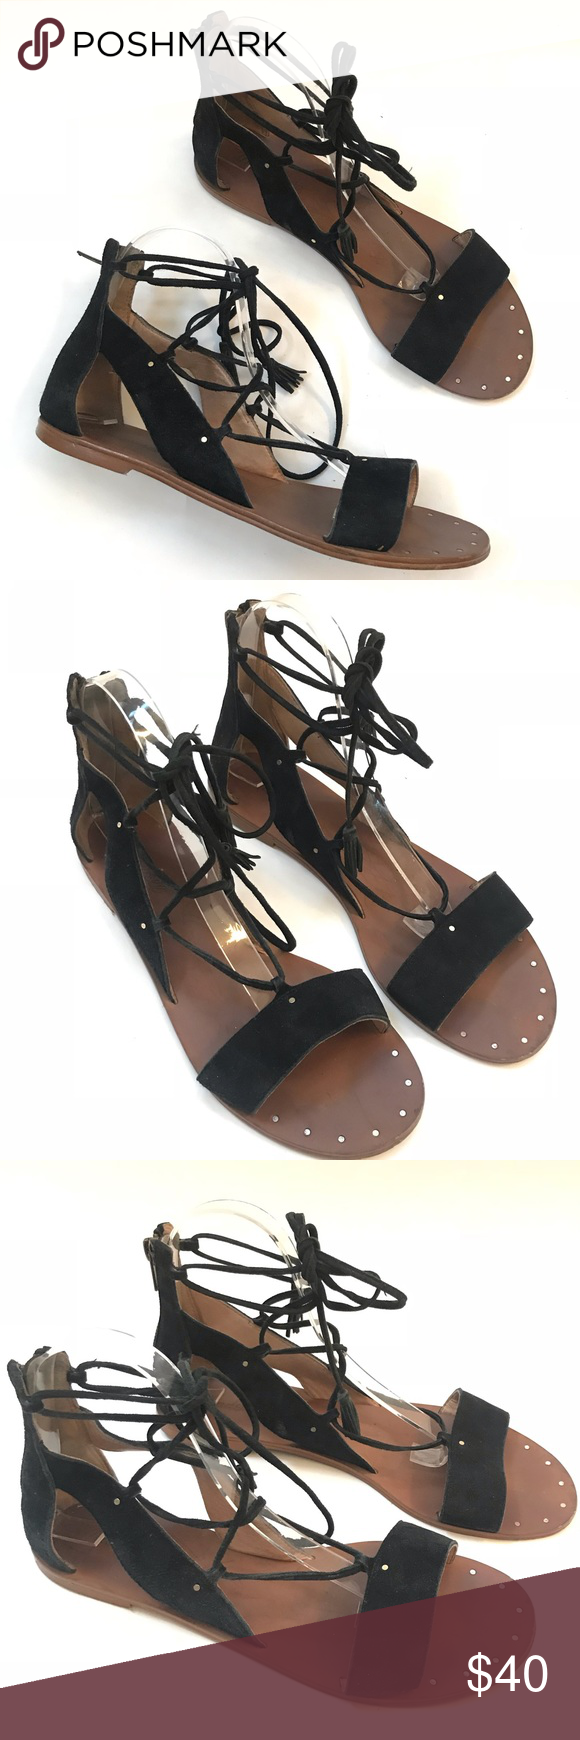 efca6815a08d Madewell Bridget Gladiator Leathe lace up Sandal 8 Smooth suede Madewell  gladiator sandals accented with petite studs. Lace-up closure and exposed  back zip.